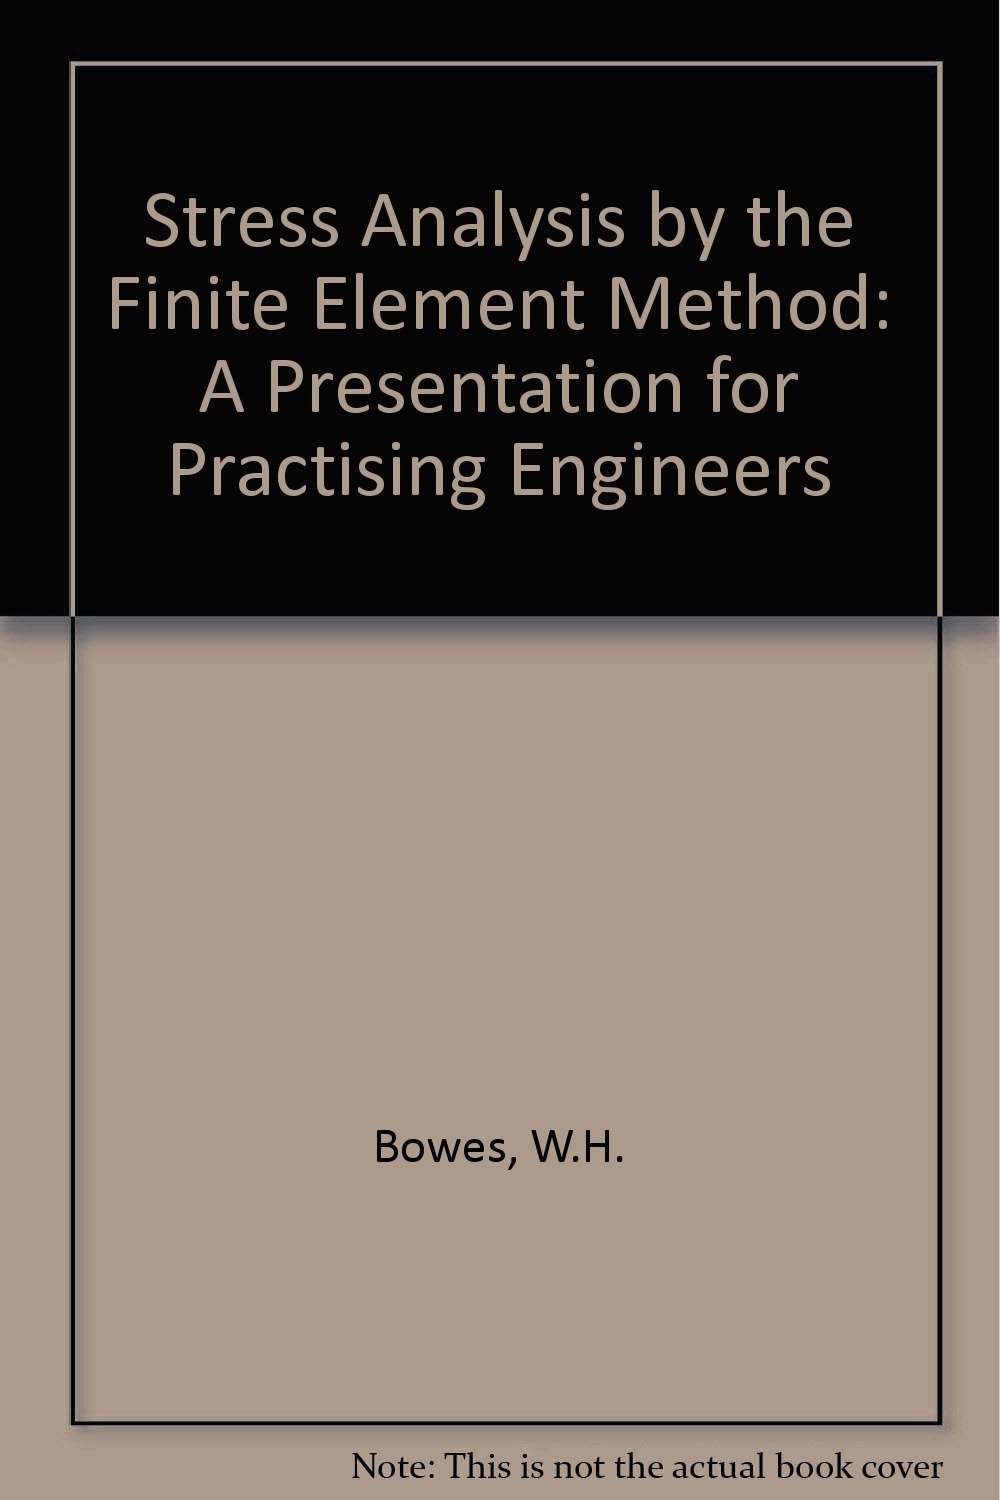 Stress analysis by the finite element method for practicing